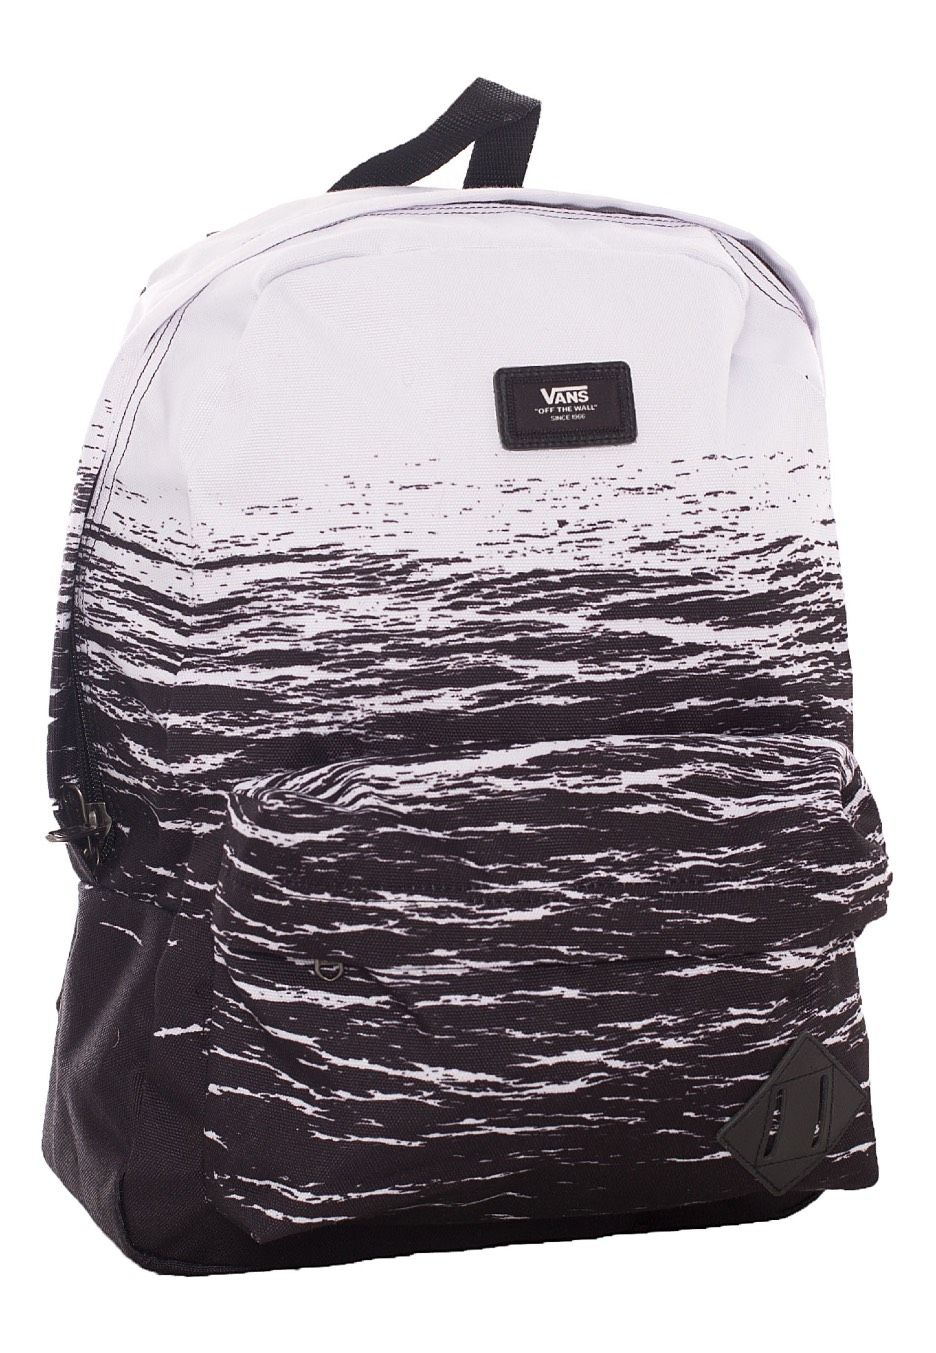 f137738a45a Vans - Old Skool II White Dark Water - Backpack - Impericon.com UK